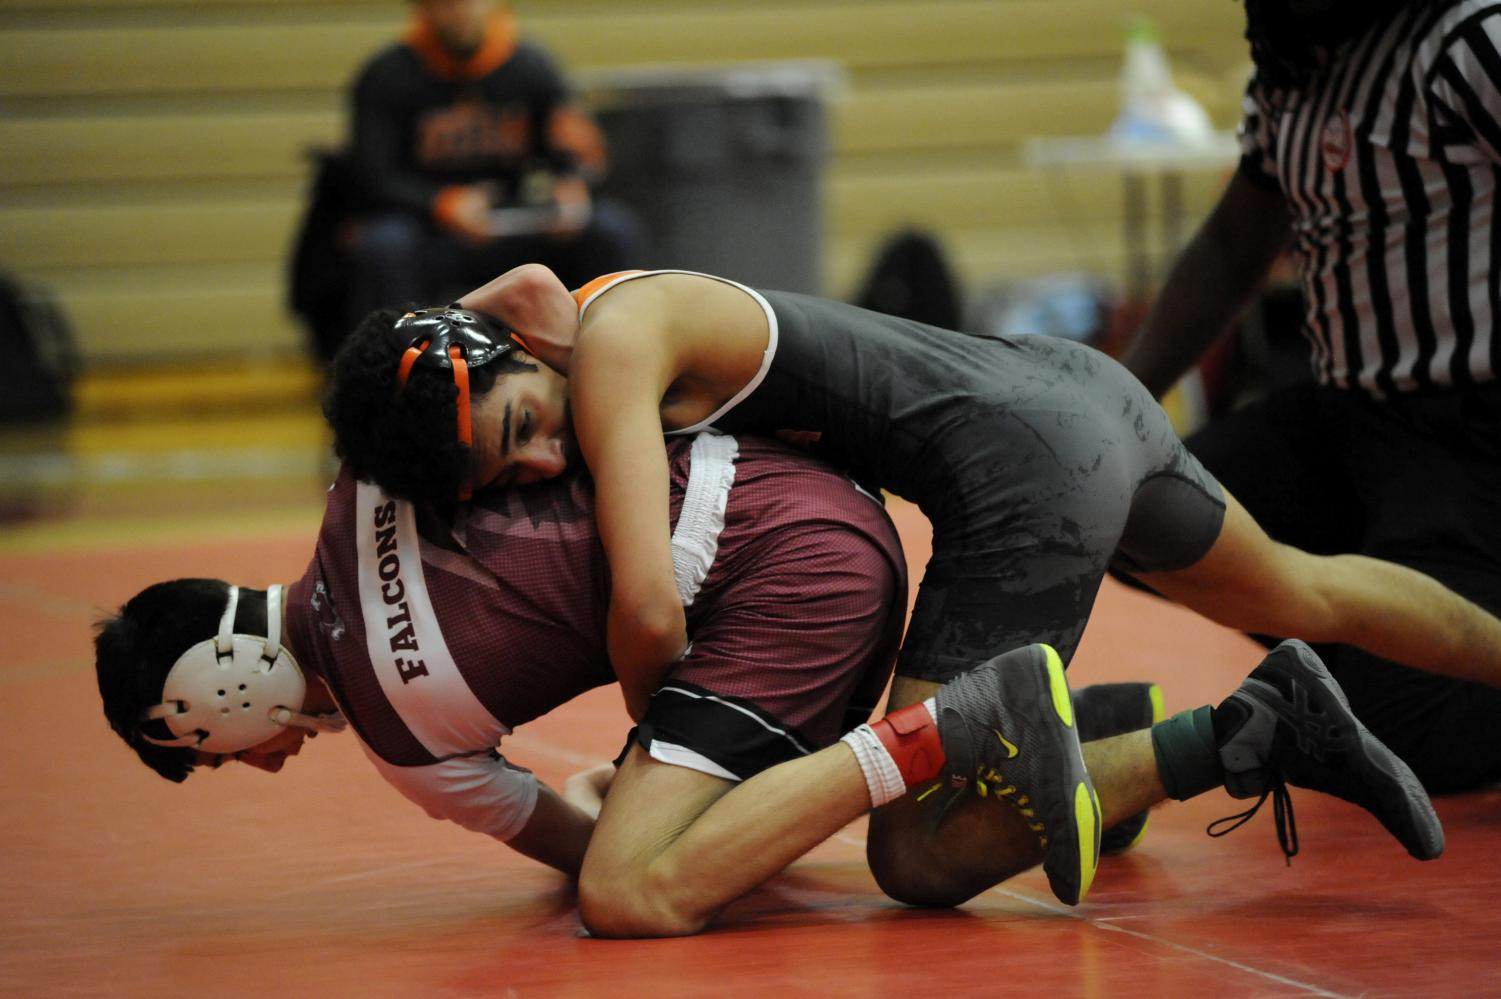 Sophomore Tahami Waris pins down a wrestler from Ford High school during a match.